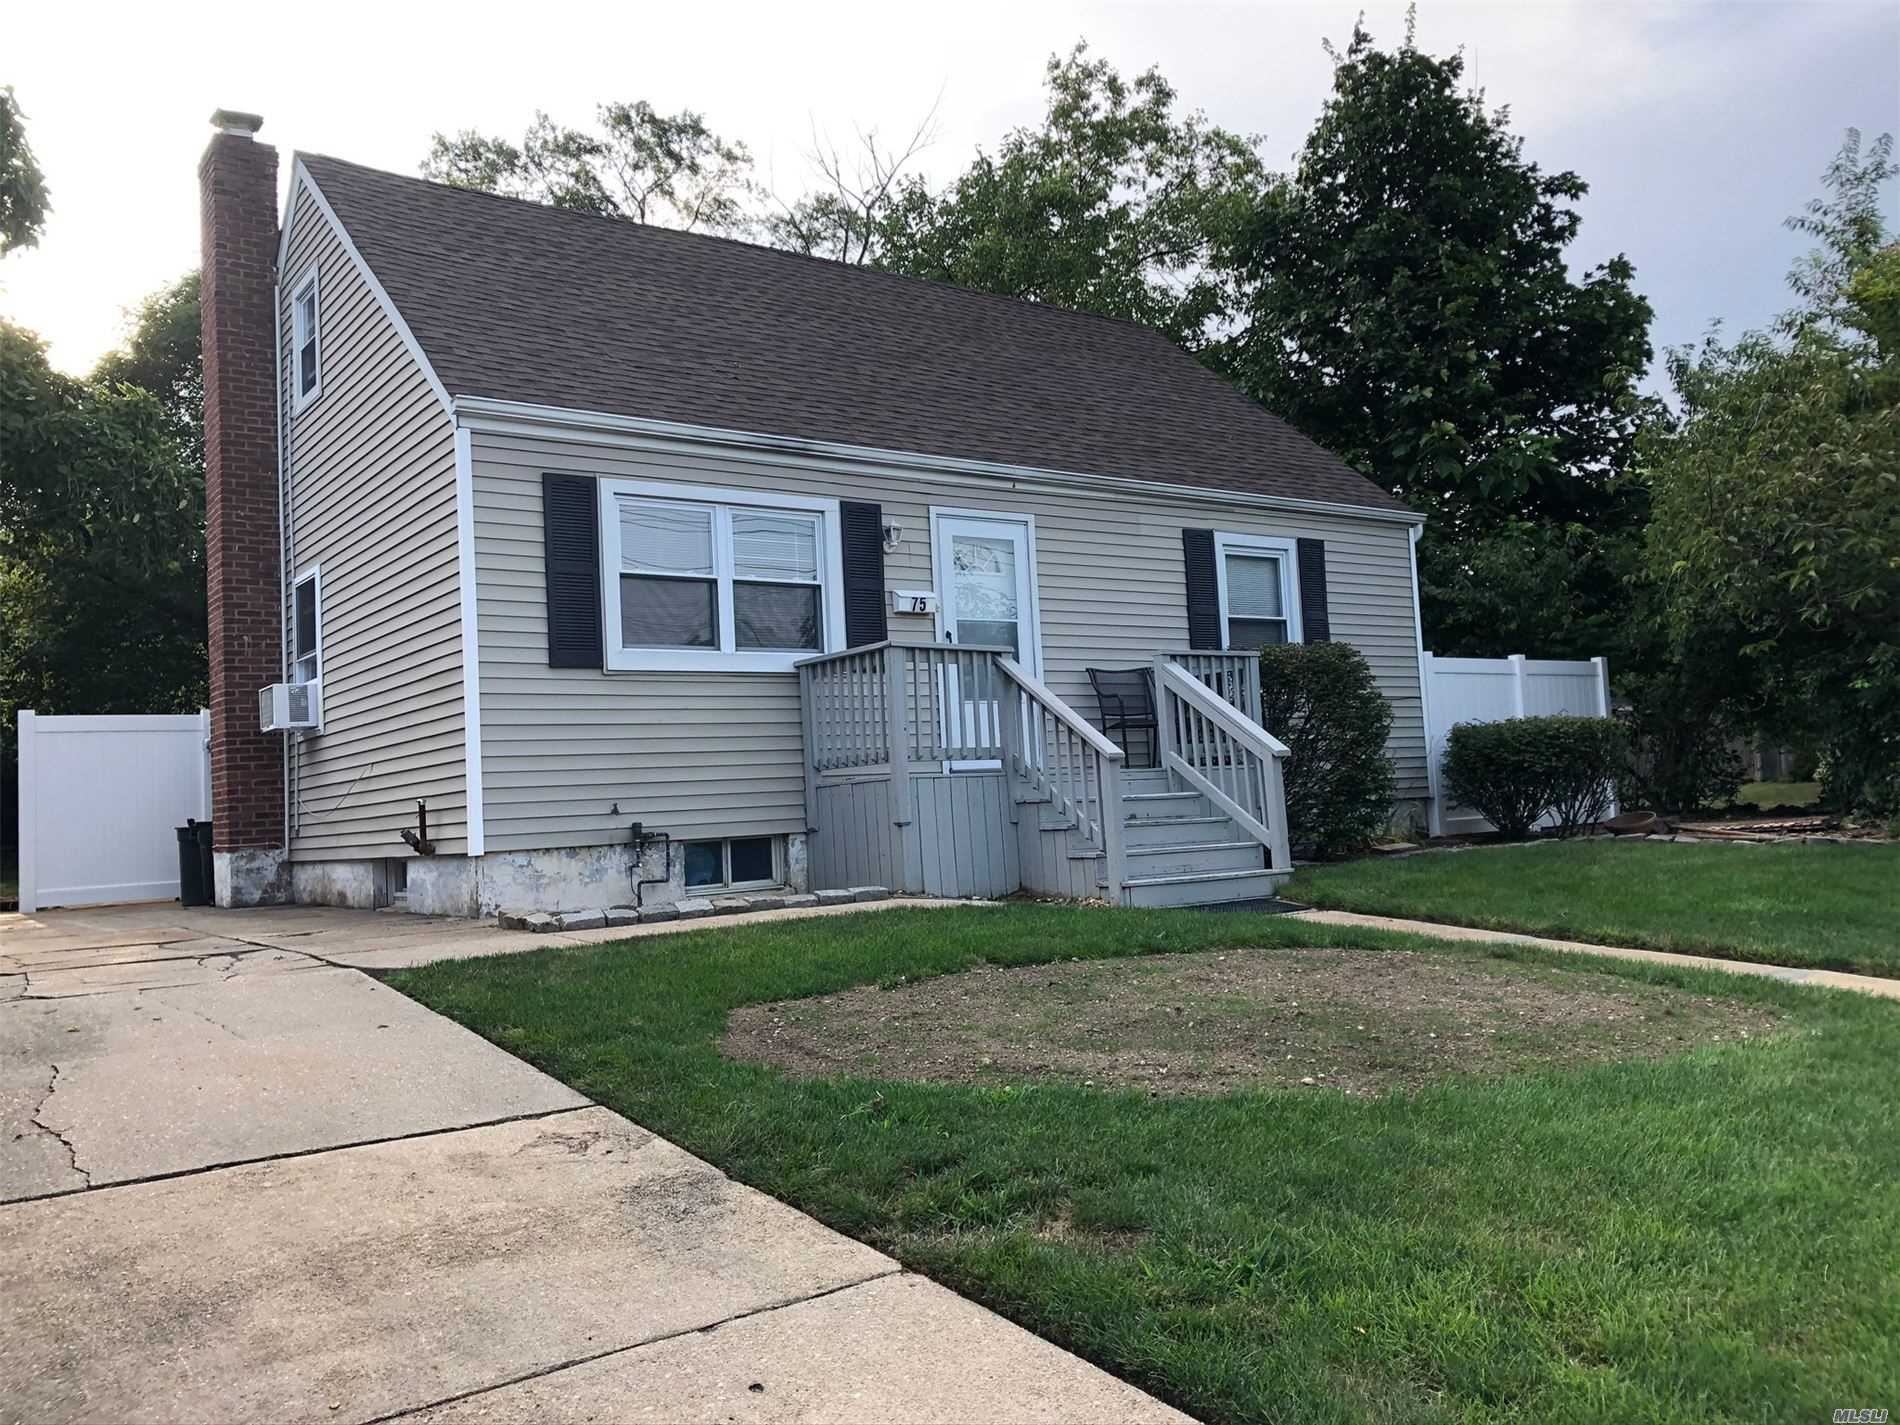 75 N Wantagh Ave, Levittown, NY 11756 - MLS#: 3232796